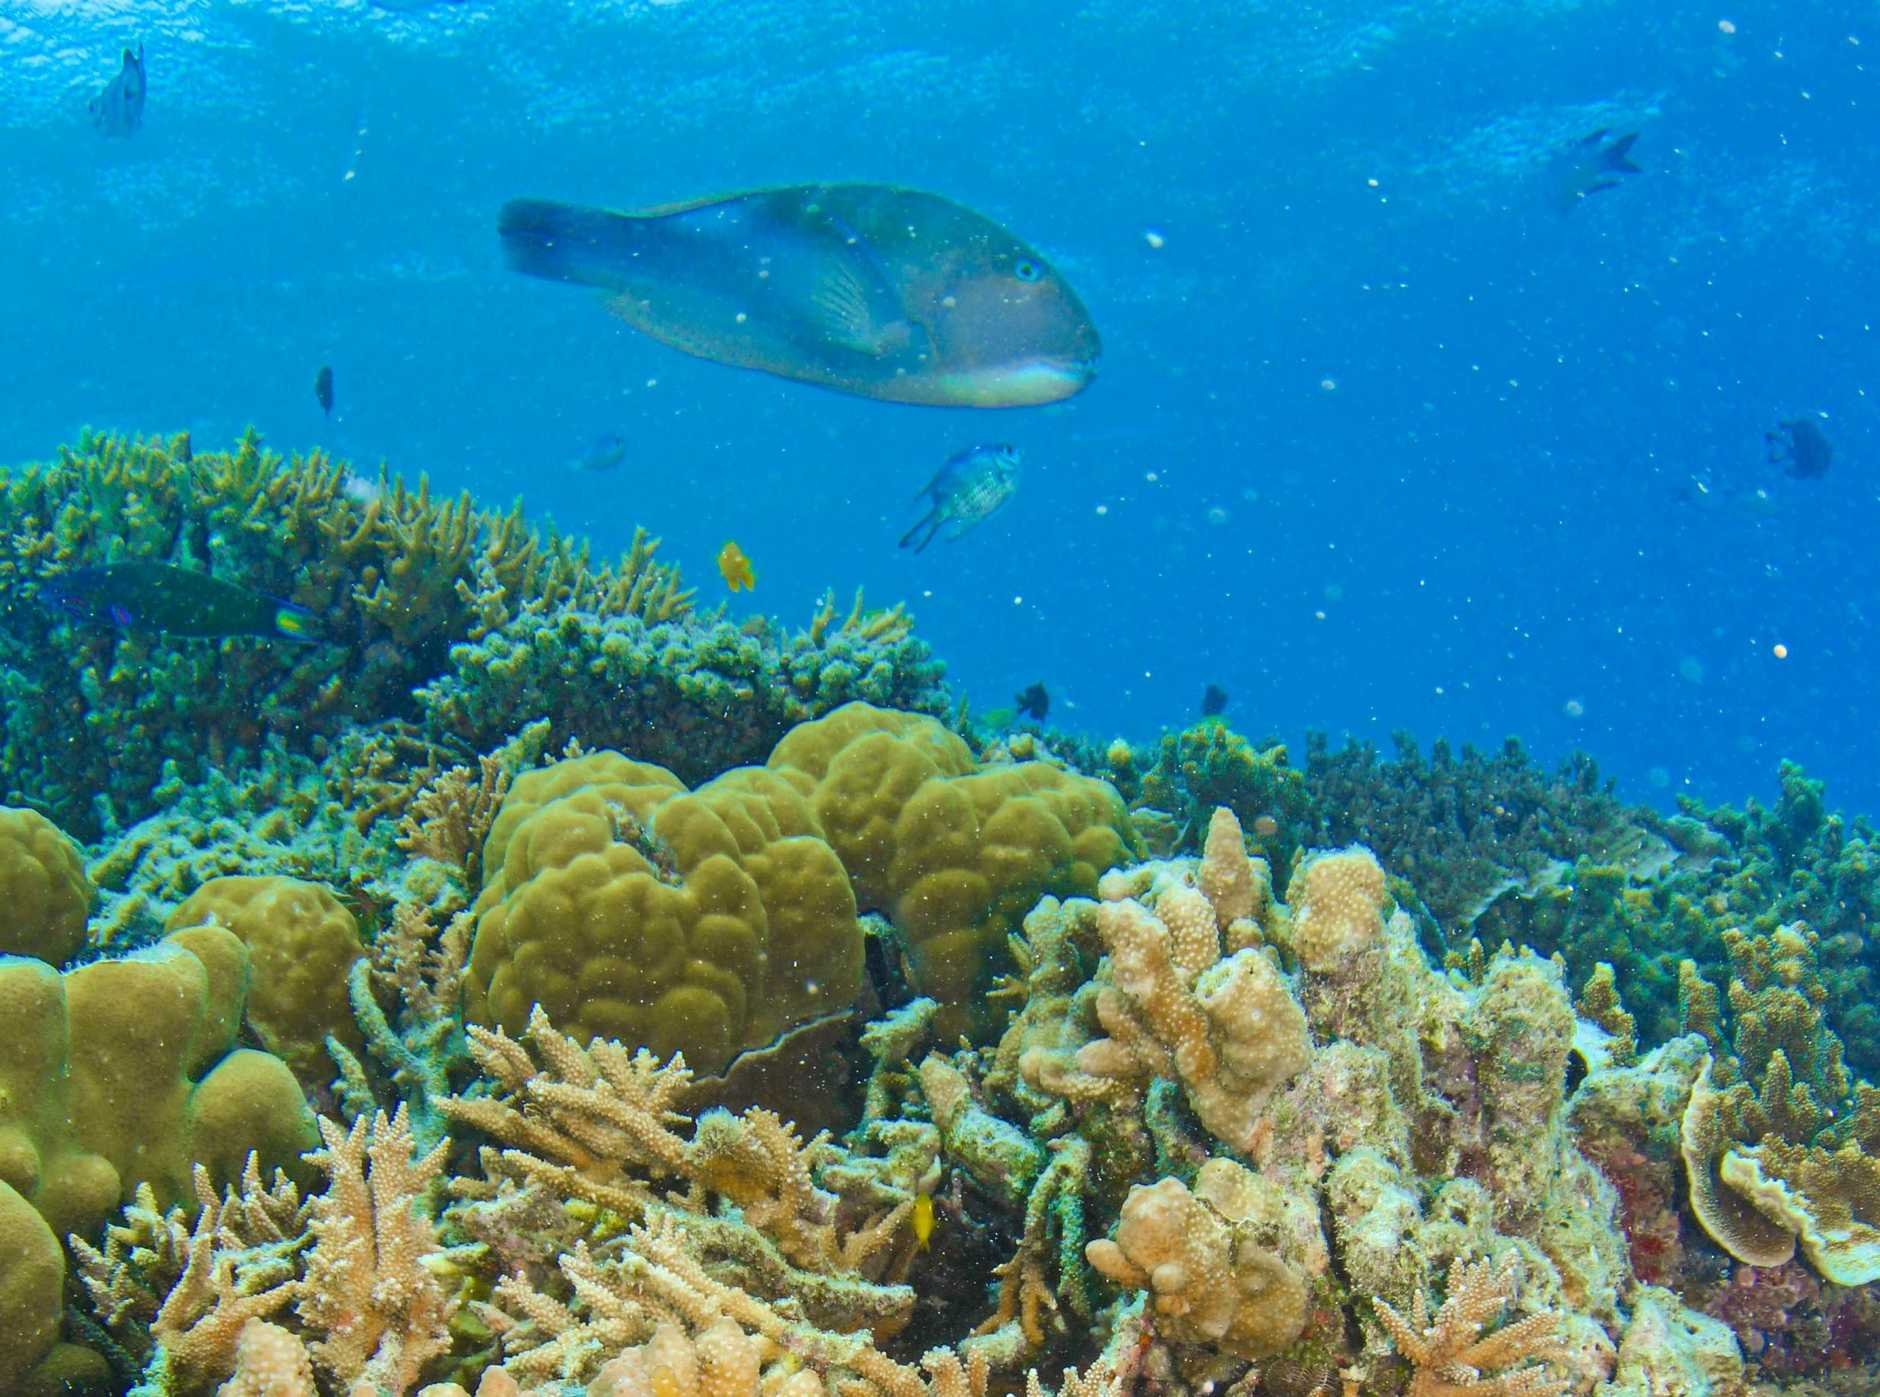 Hardy Reef on the Great Barrier Reef.